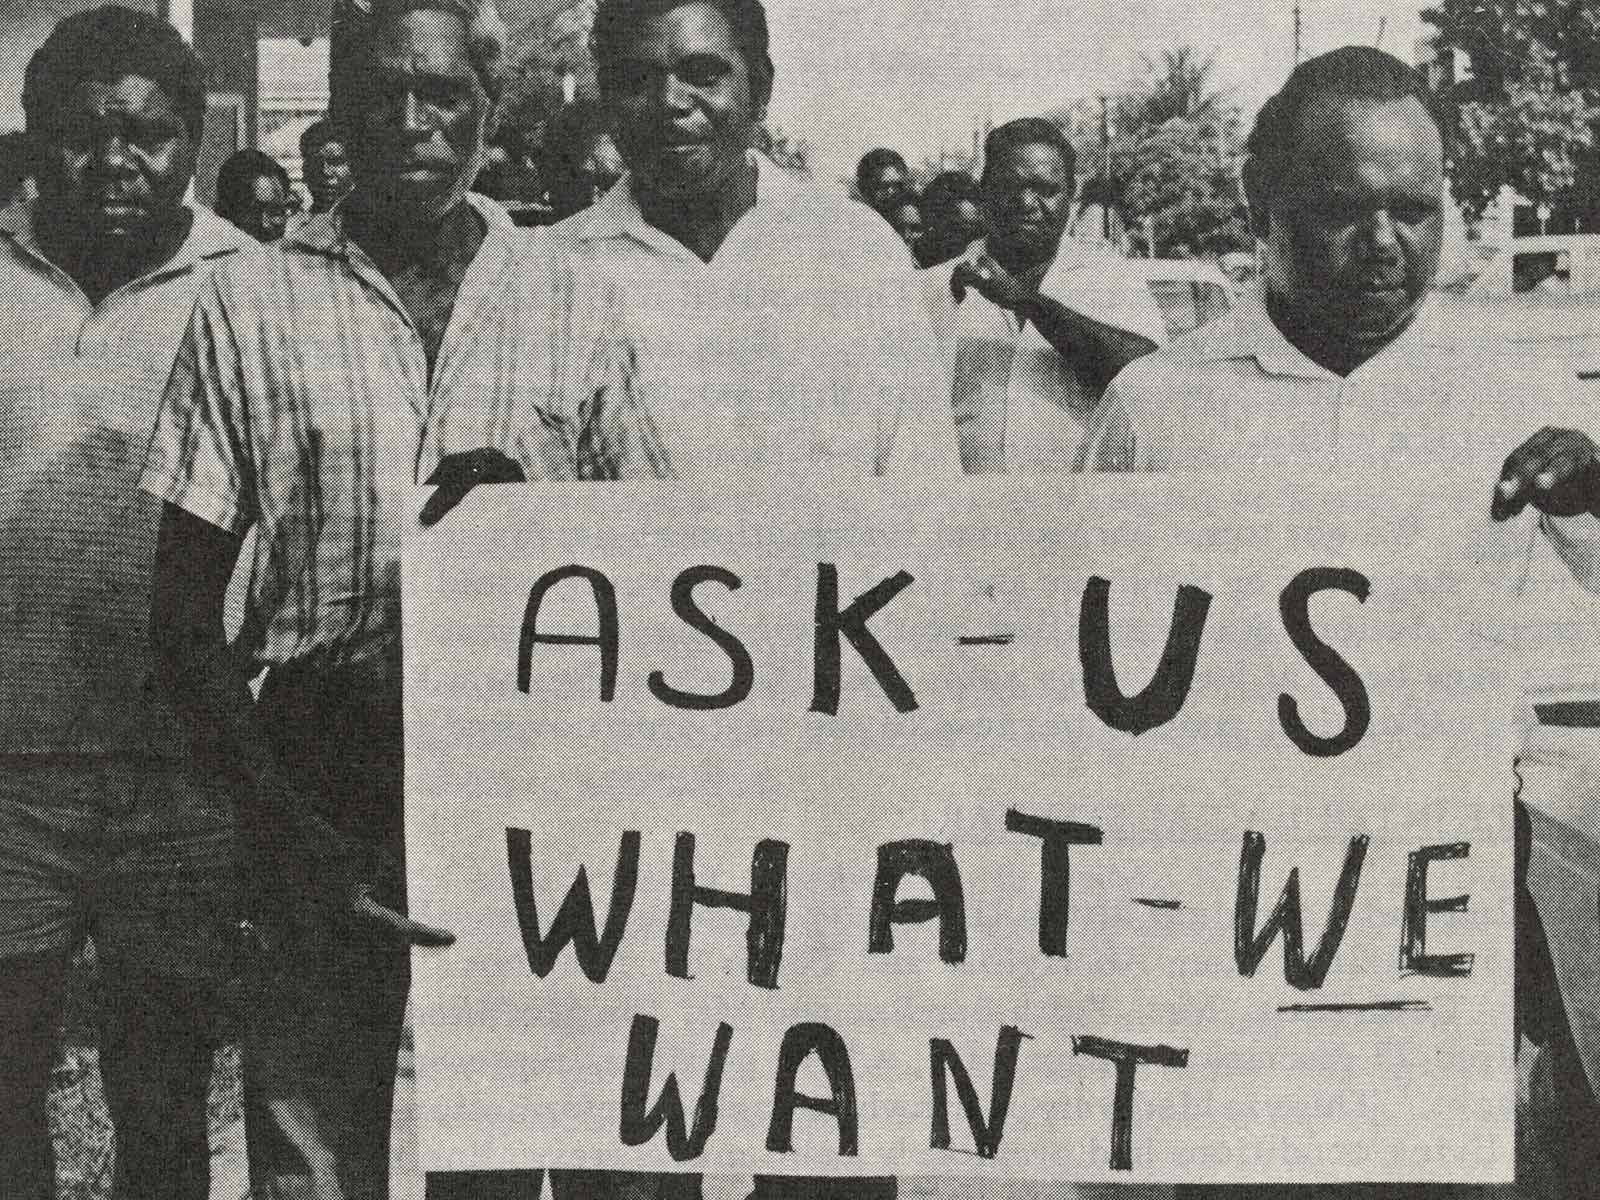 An archival clipping of a newsletter article depicting Aboriginal men walking with a placard that says 'ask us what we want'